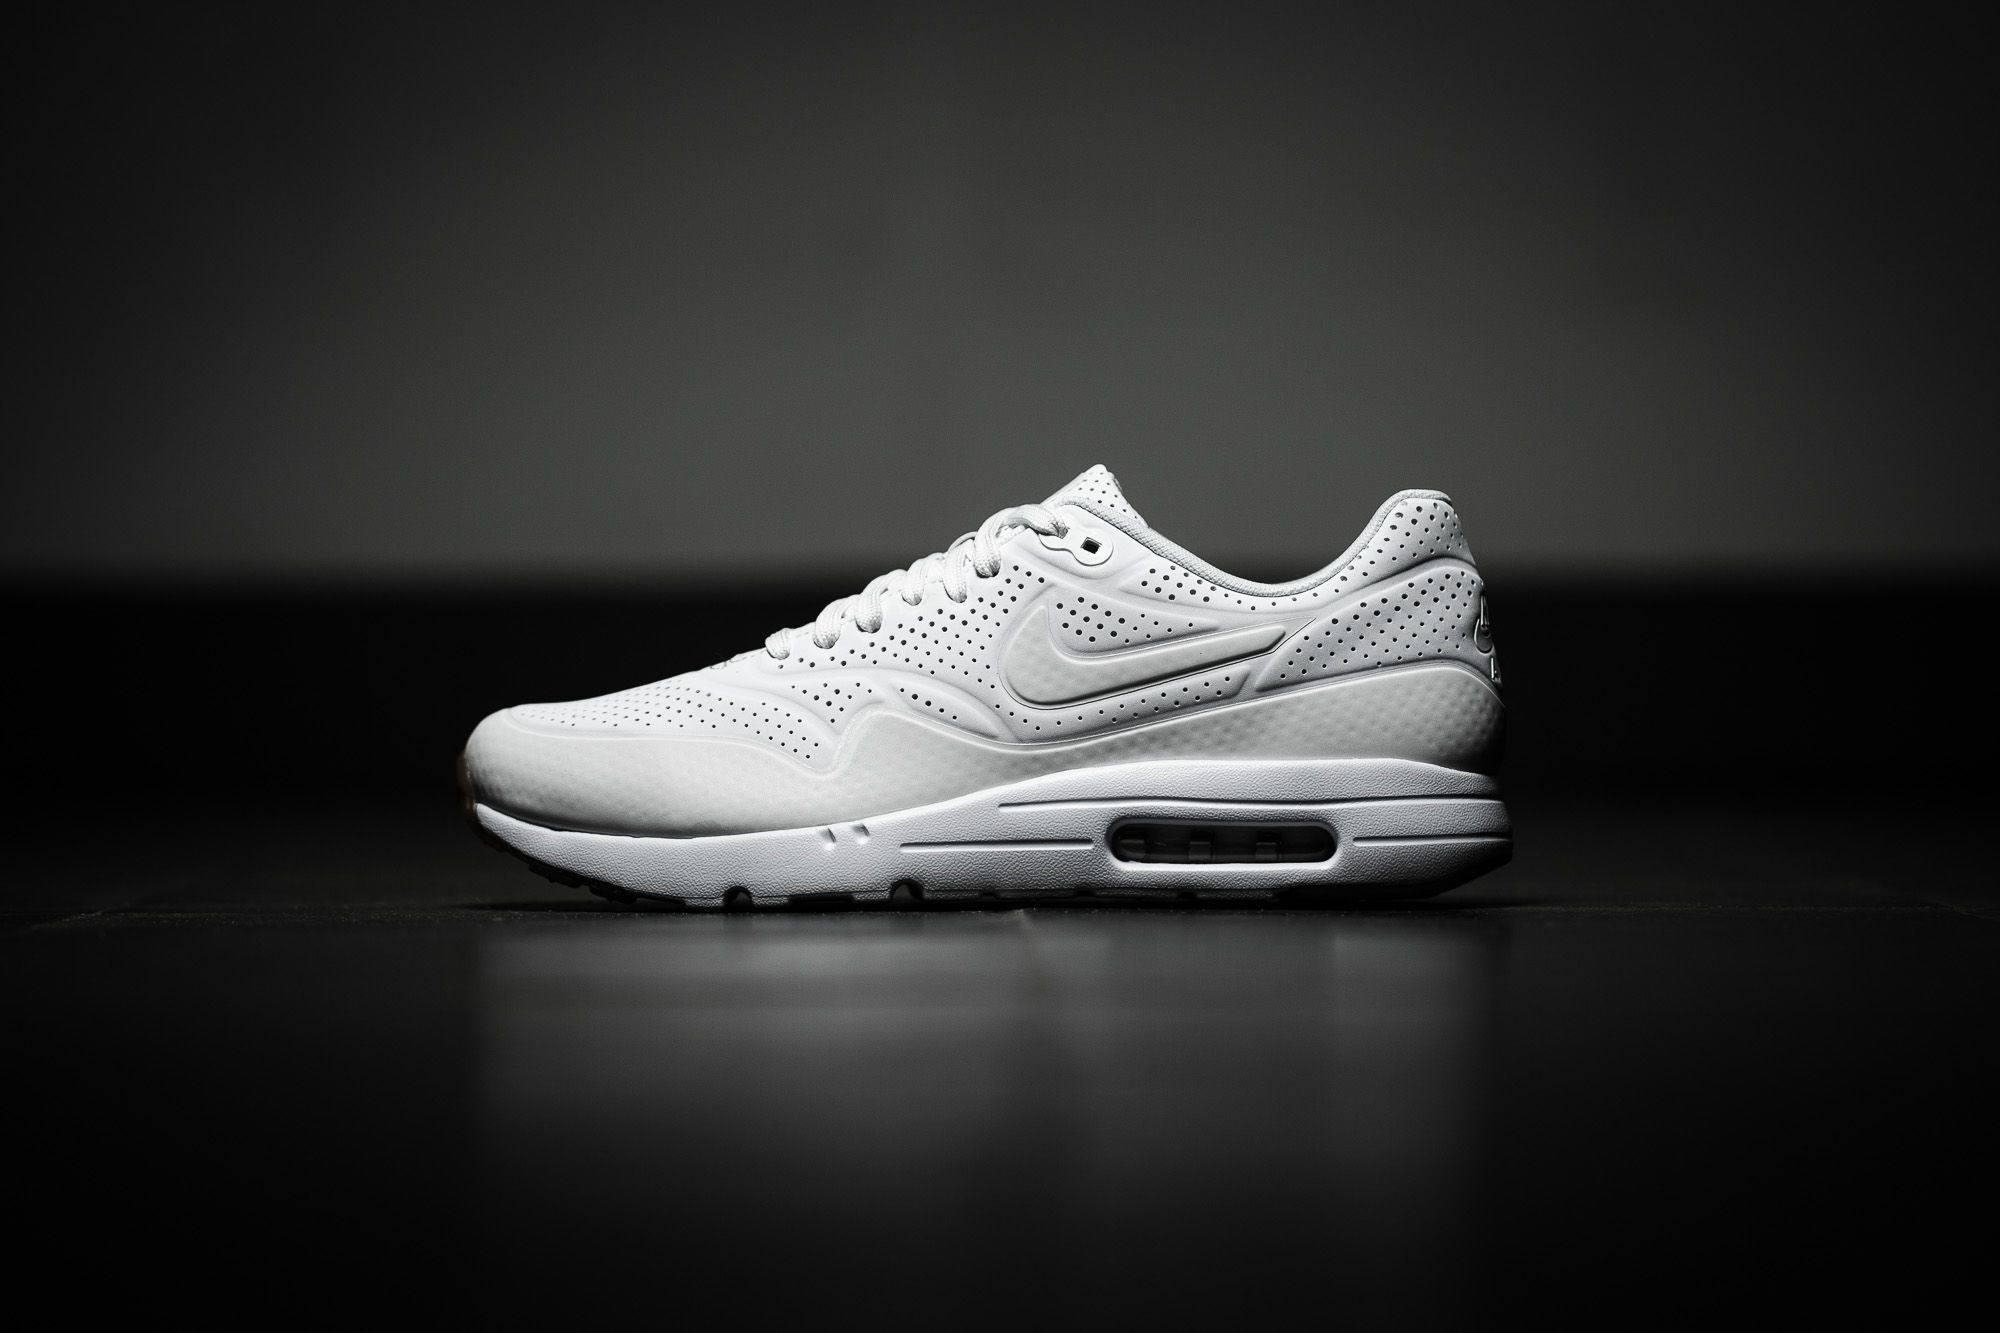 The Nike Air Max 1 Ultra Moire is available at our shop now